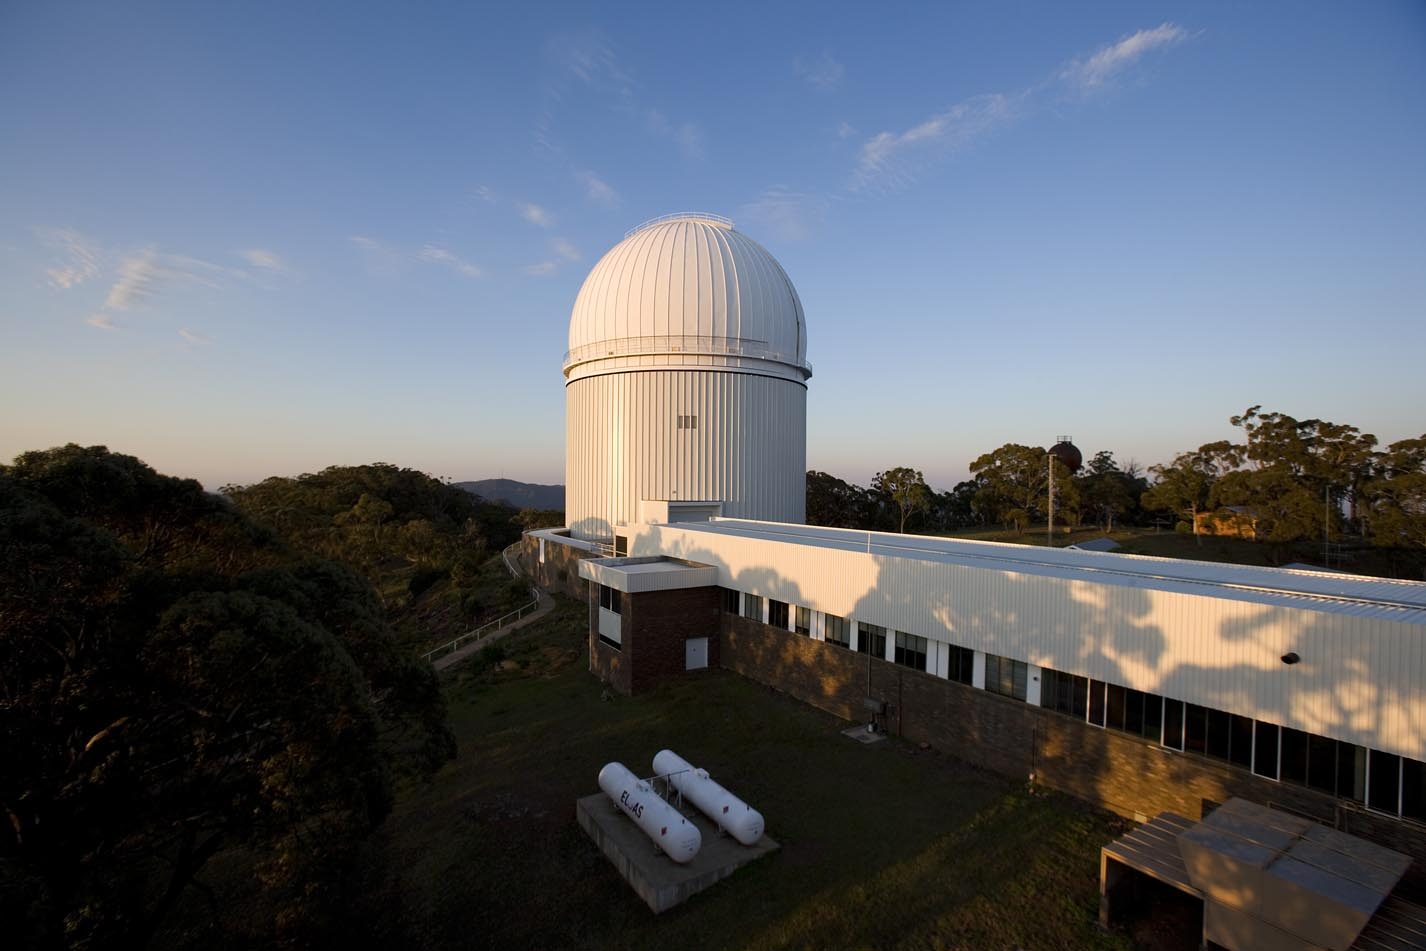 Siding Spring Observatory Asbestos Remediation Shaw